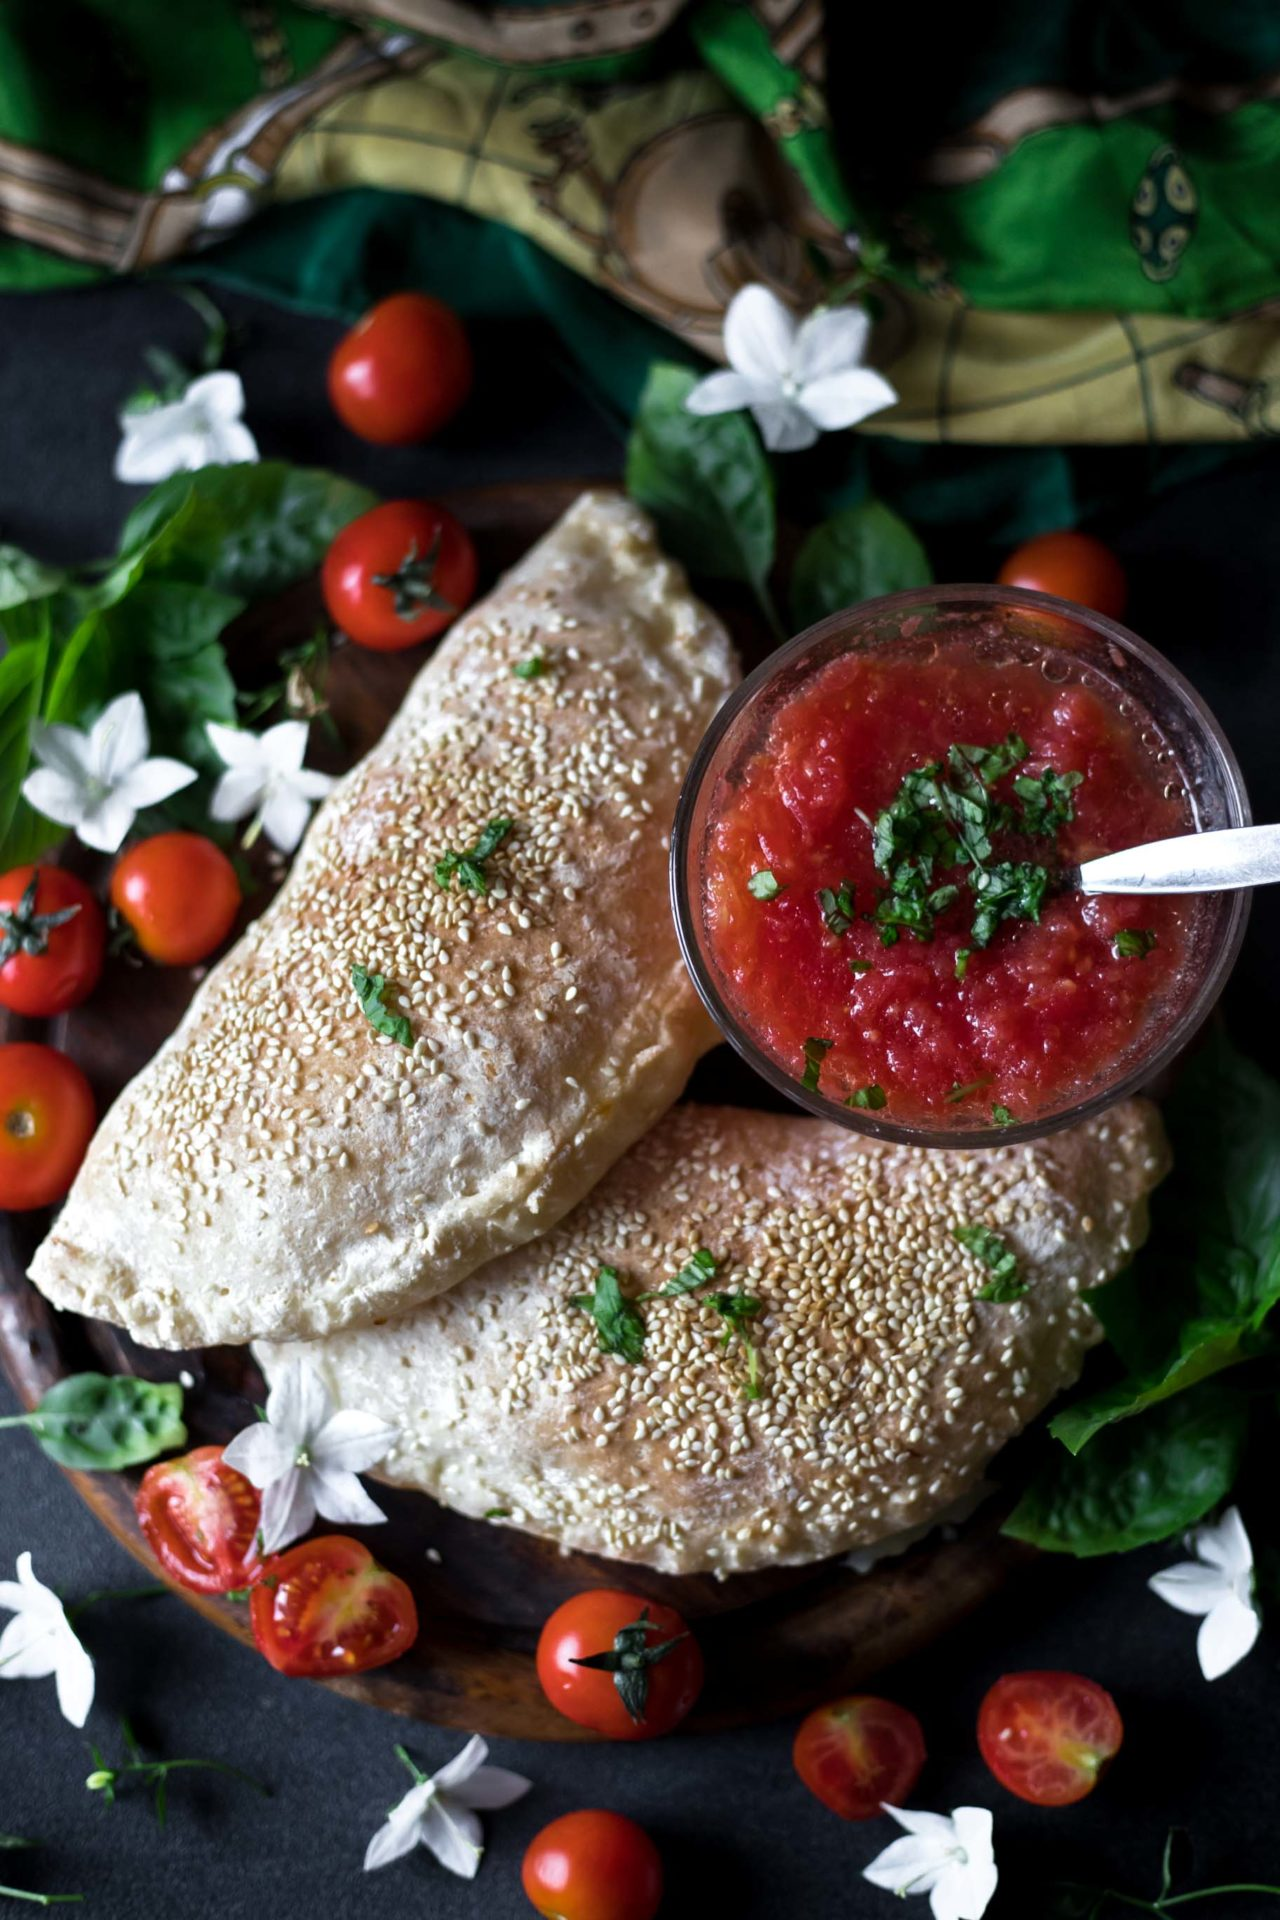 This Gluten-Free Calzone is low FODMAP and easy to digest. It is super flavorful and has a perfect texture crispy on the outside and chewy on the inside.